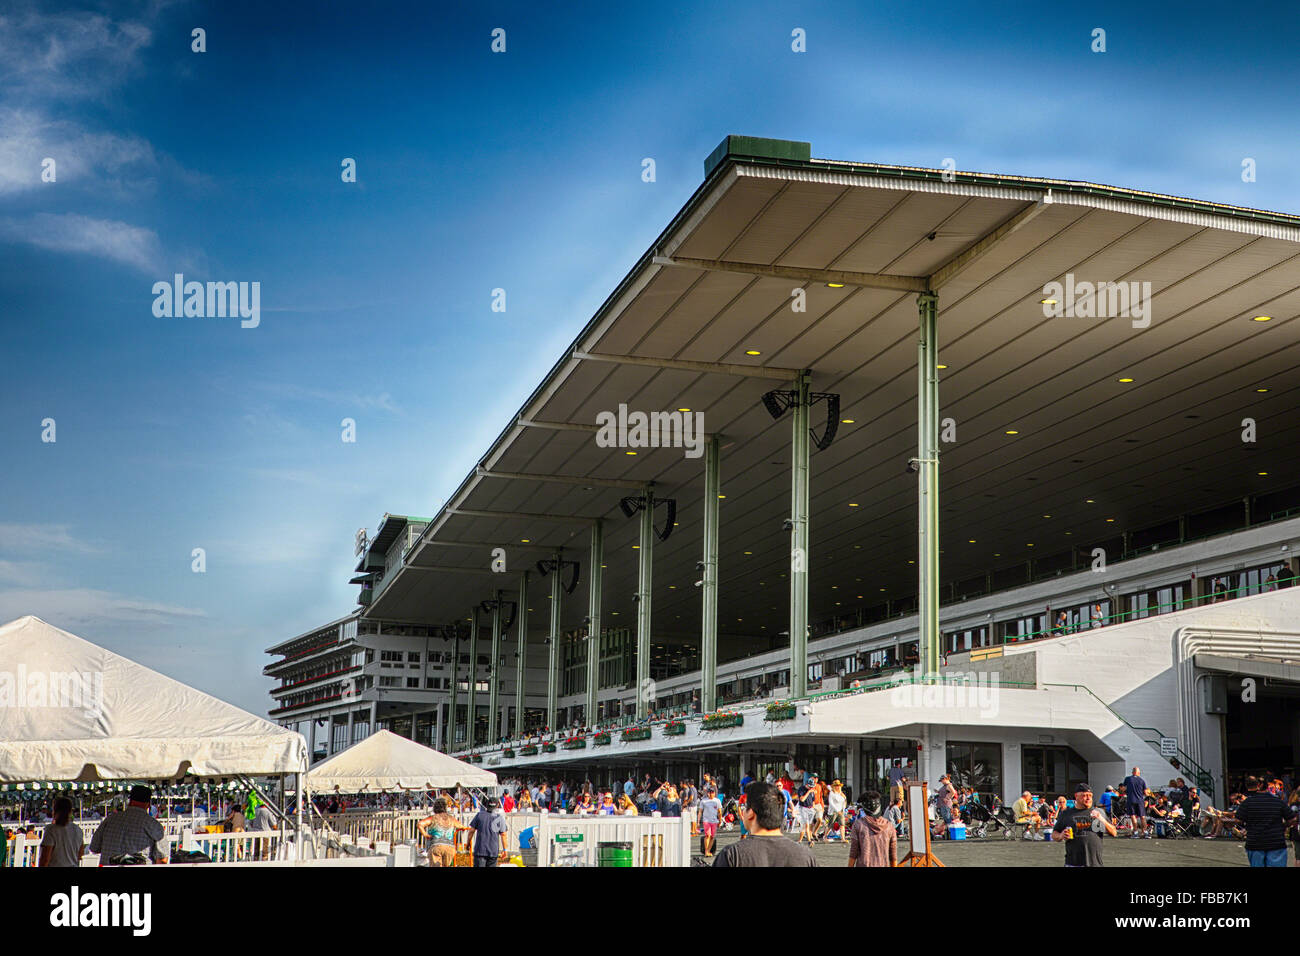 Low Angle View of the Grandstand Pavilion on the Monmouth Park